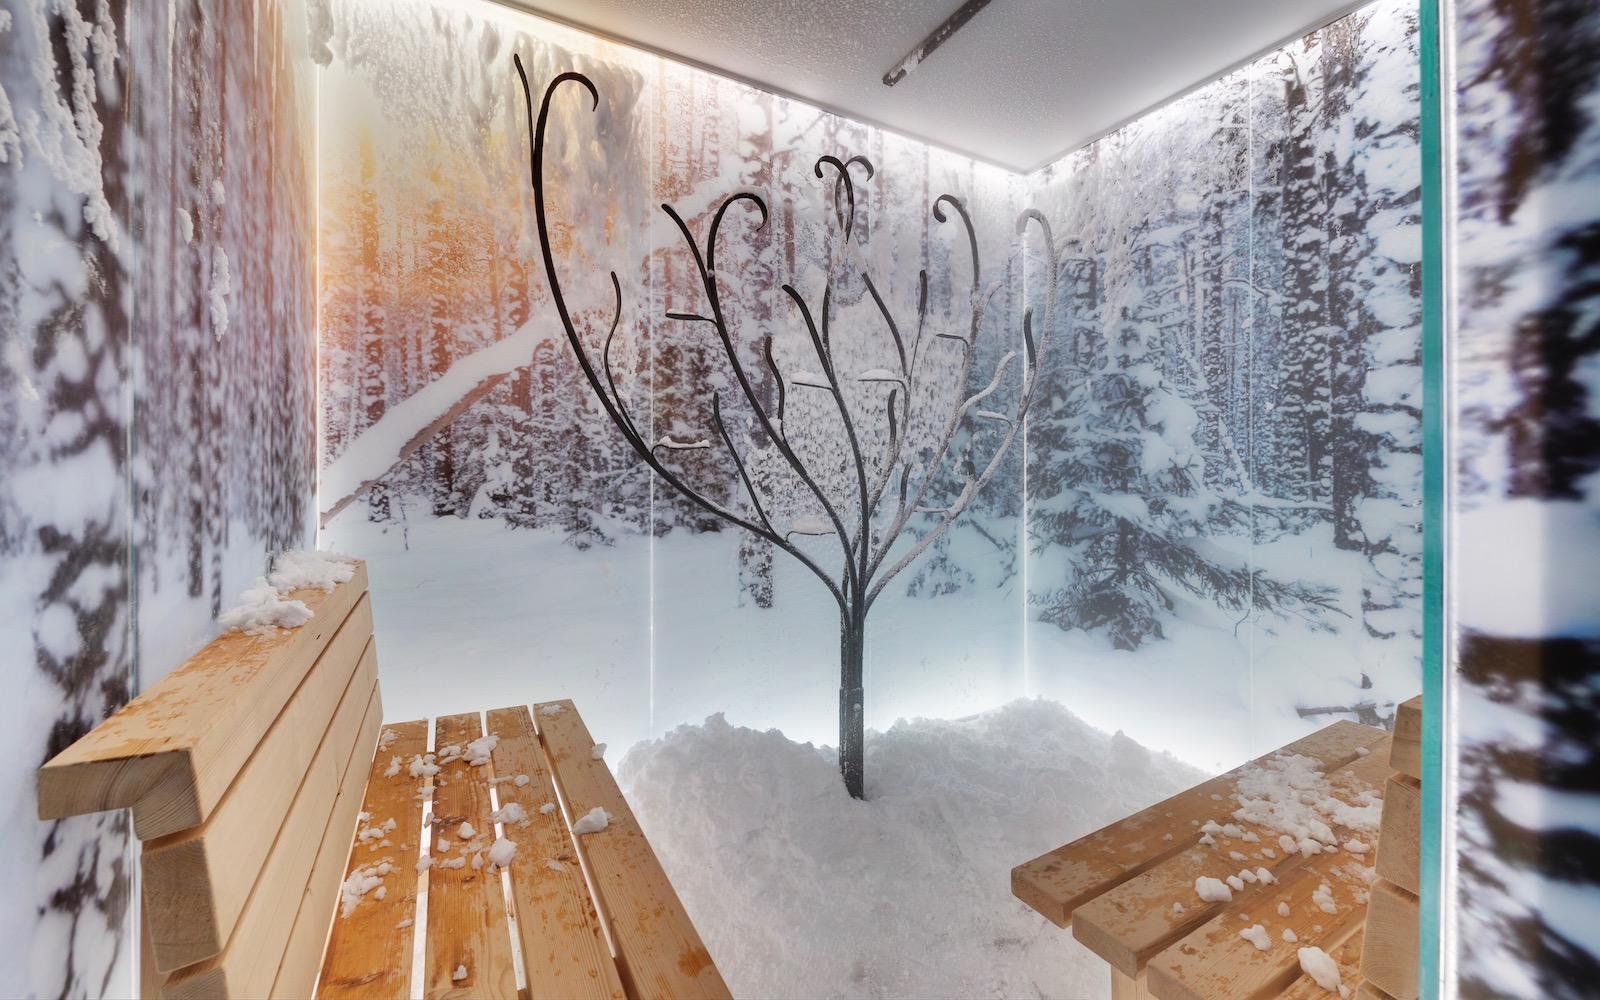 snow room at the MSC Seaview Aurea Spa